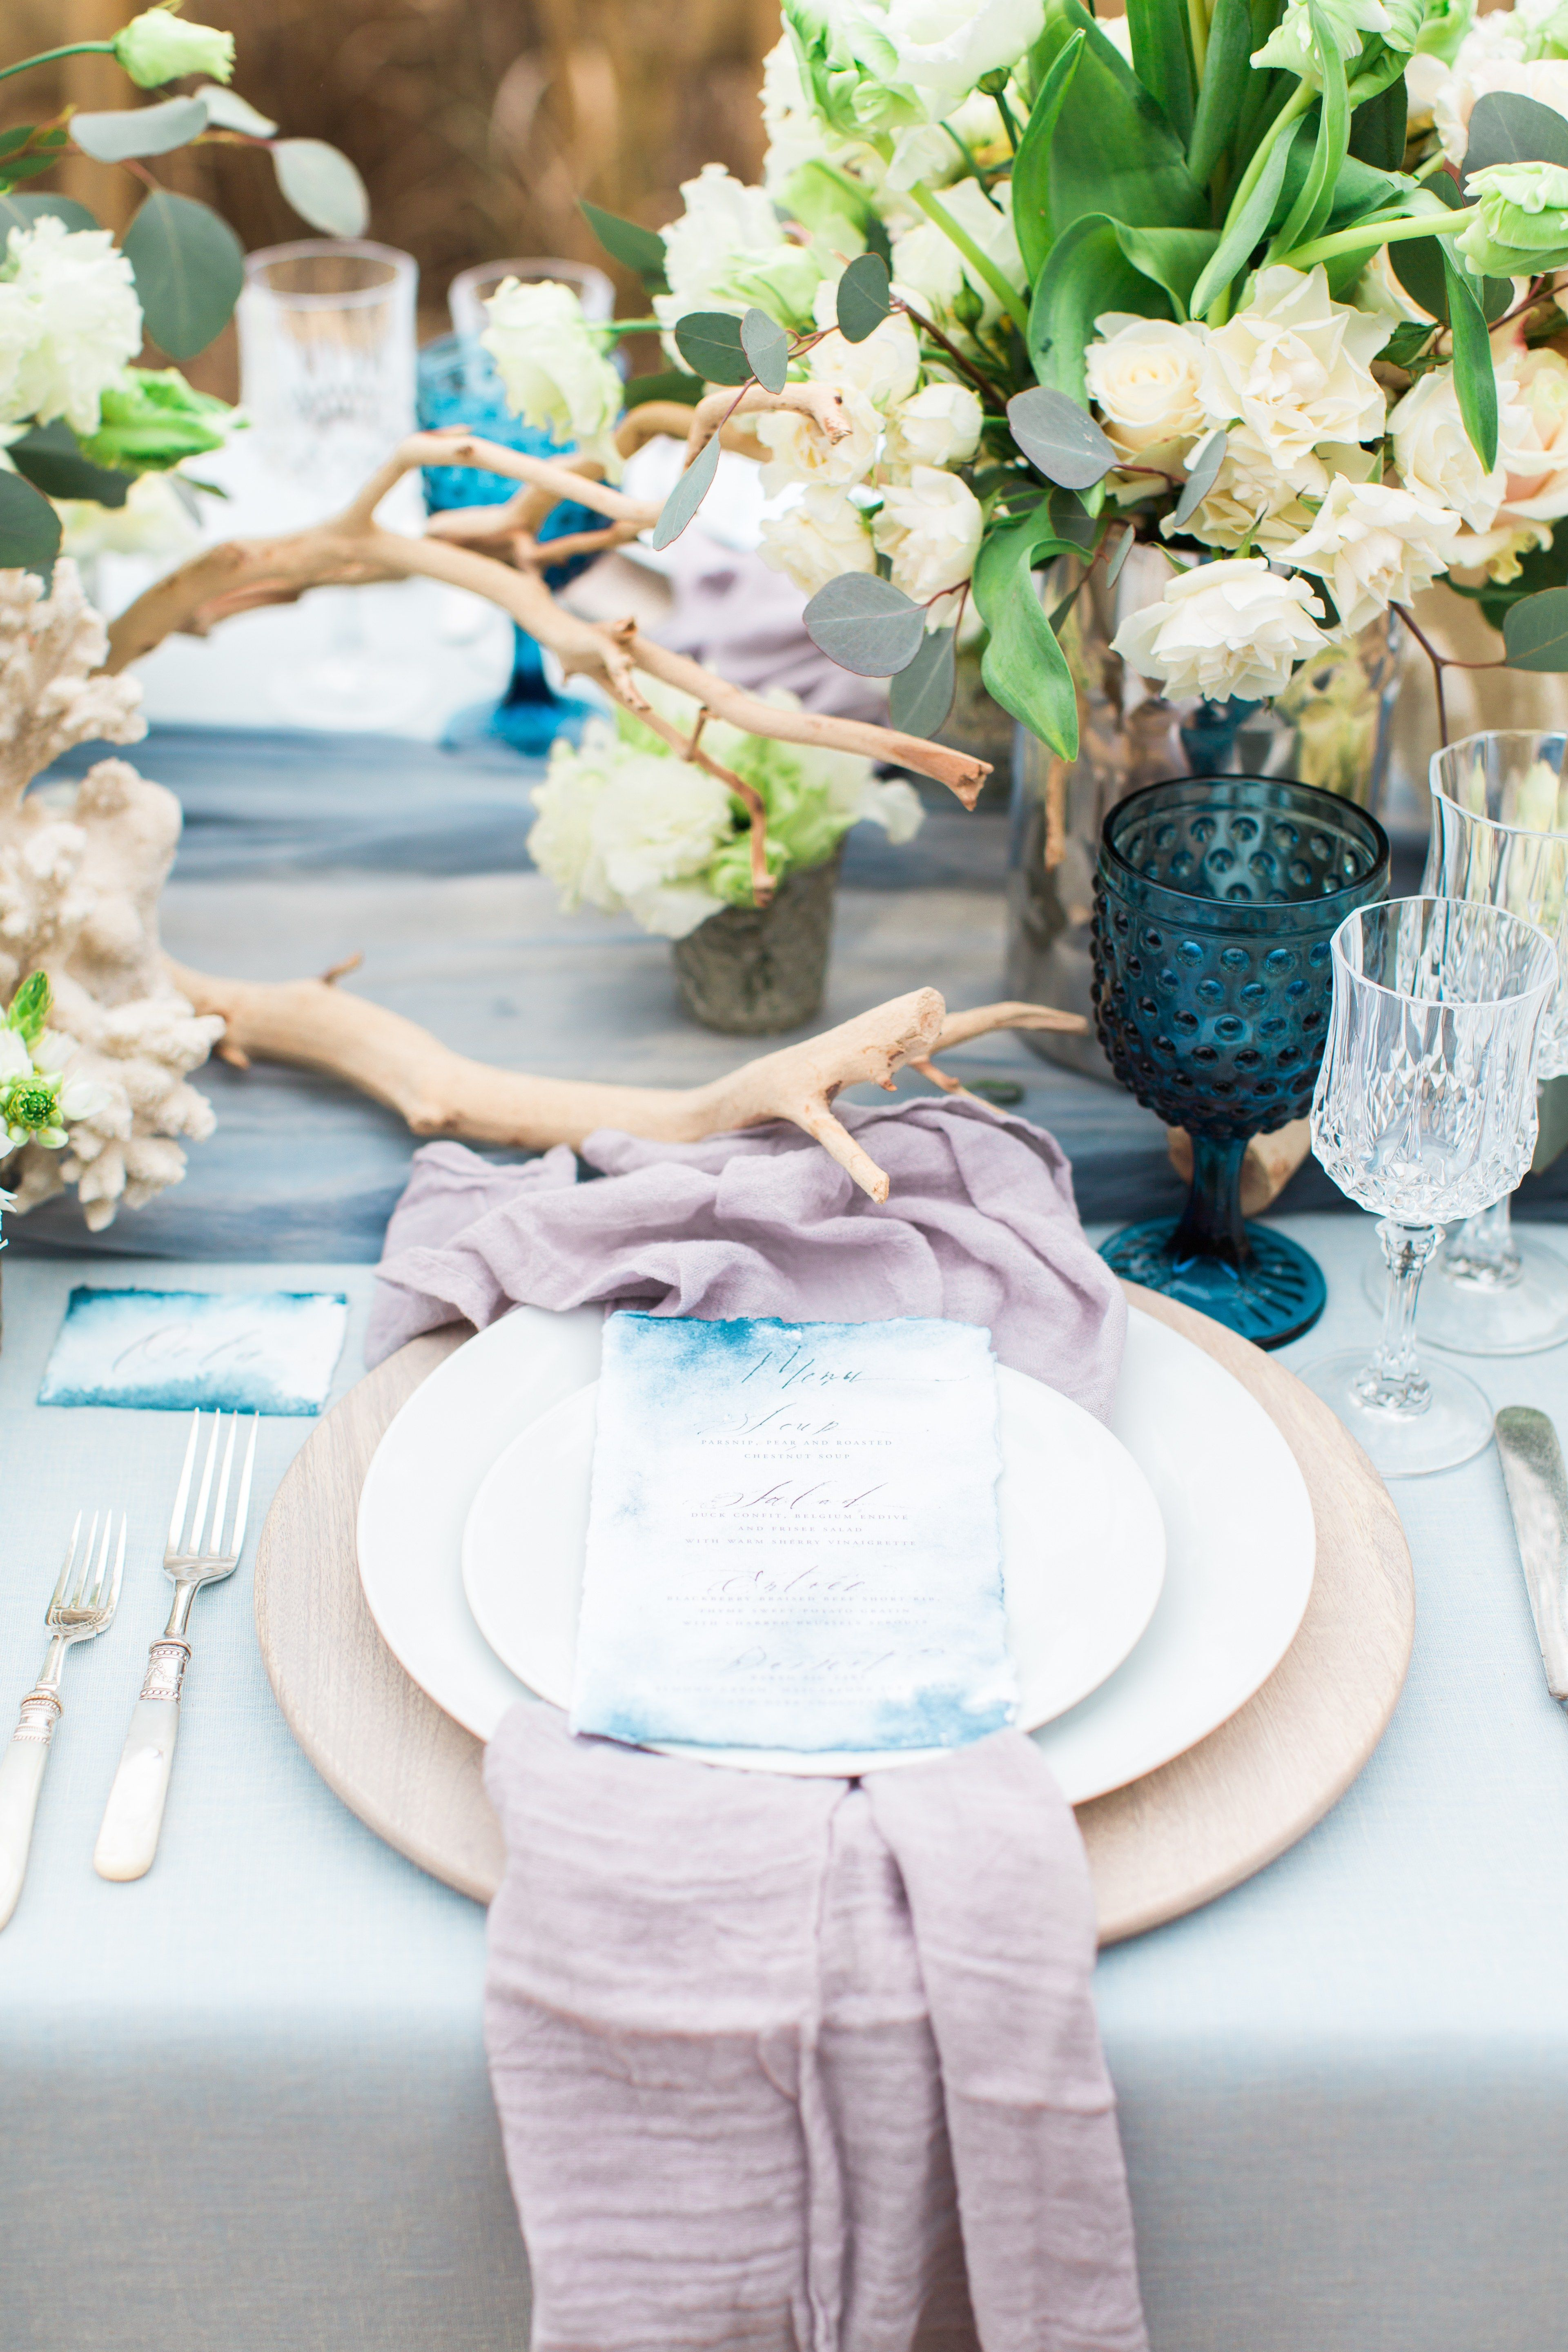 Wedding Reception Tablescapes That Are Giving Us MAJOR Spring Fever ...